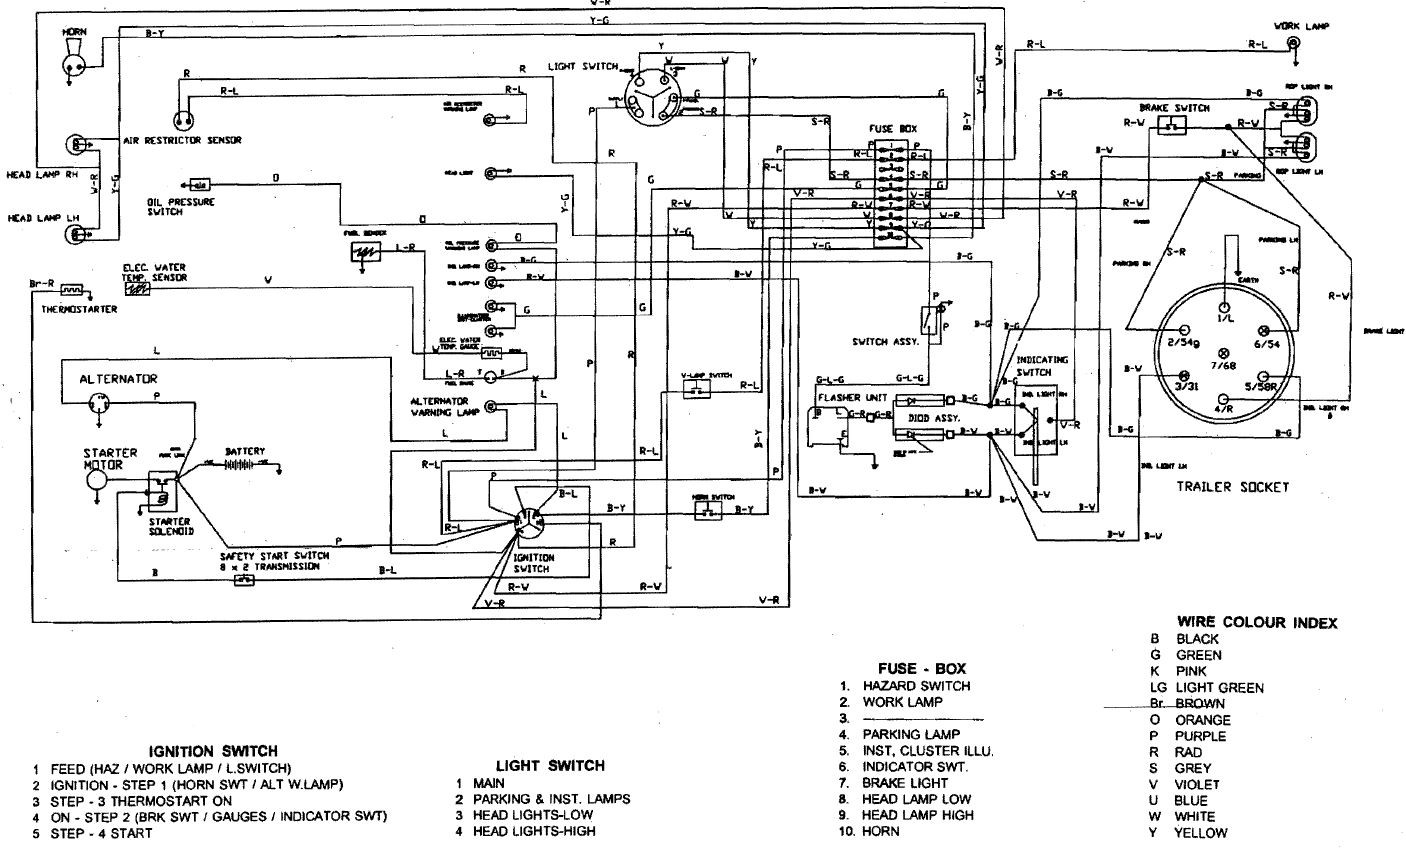 Kubota Tractor Lsel Ignition Switch Wiring Diagram